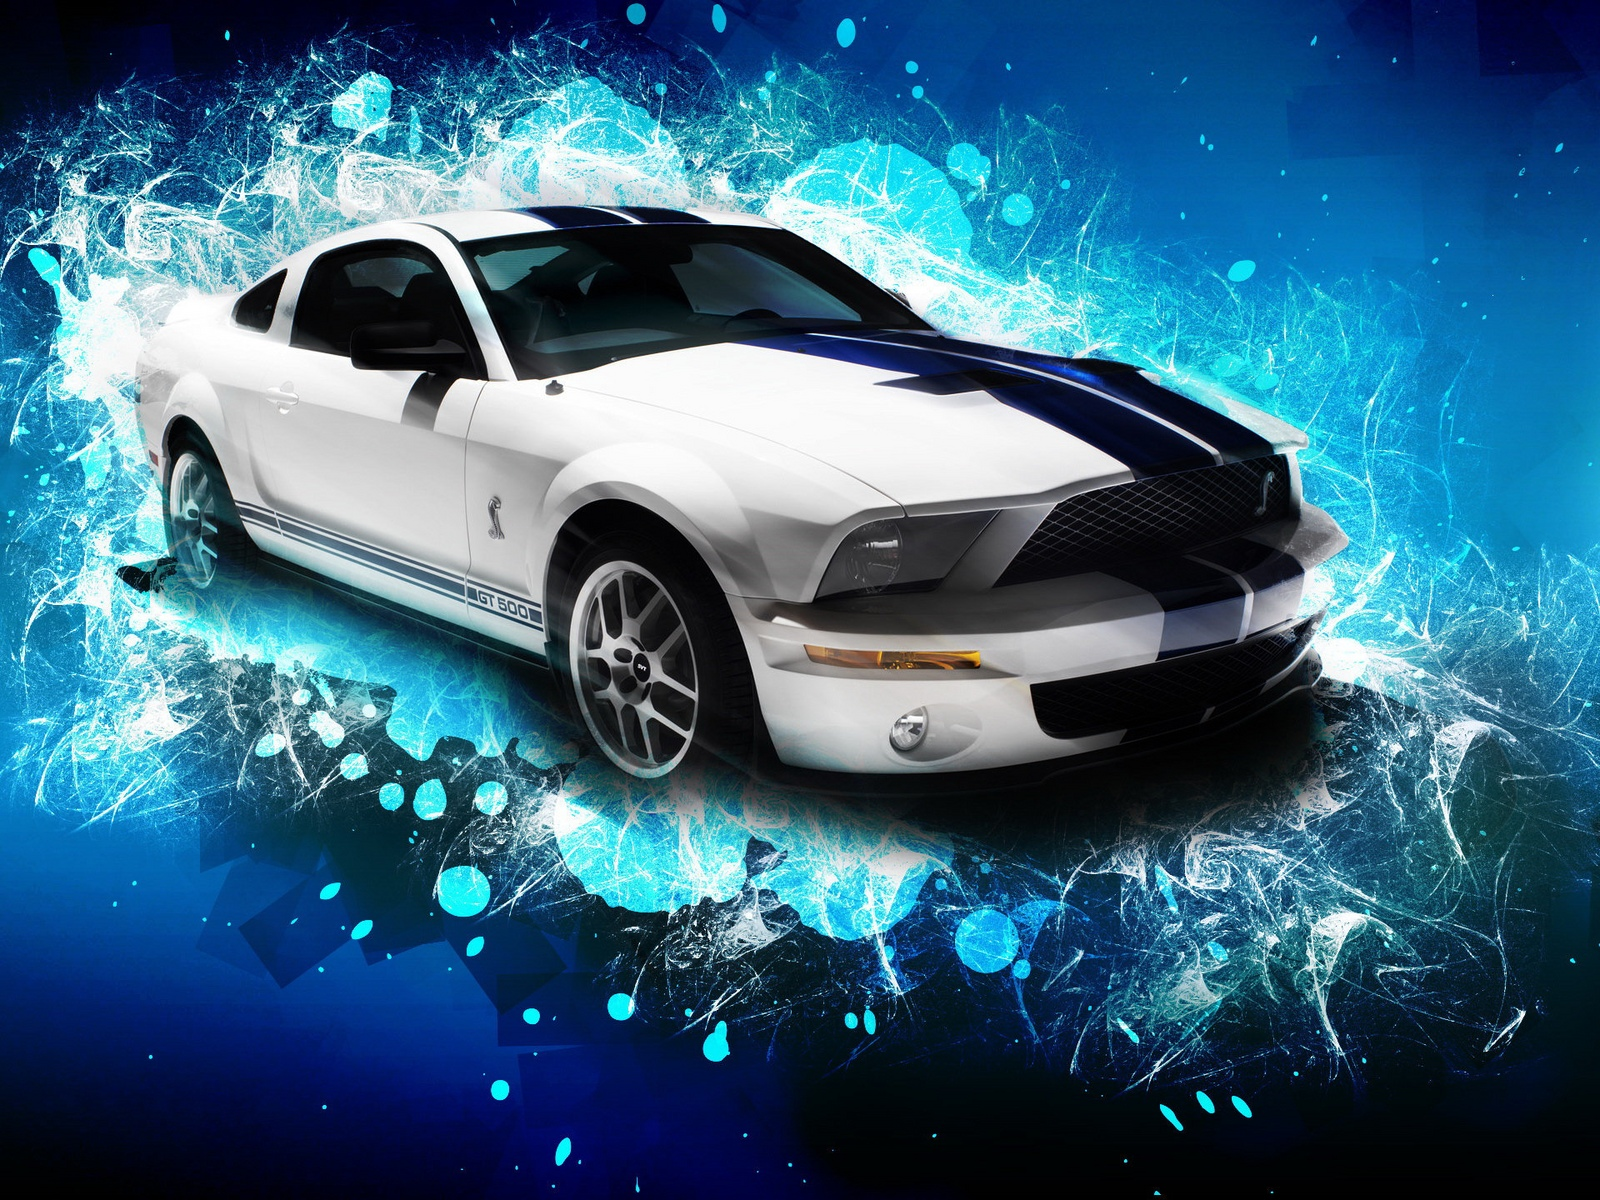 Hd Cool Car Wallpapers